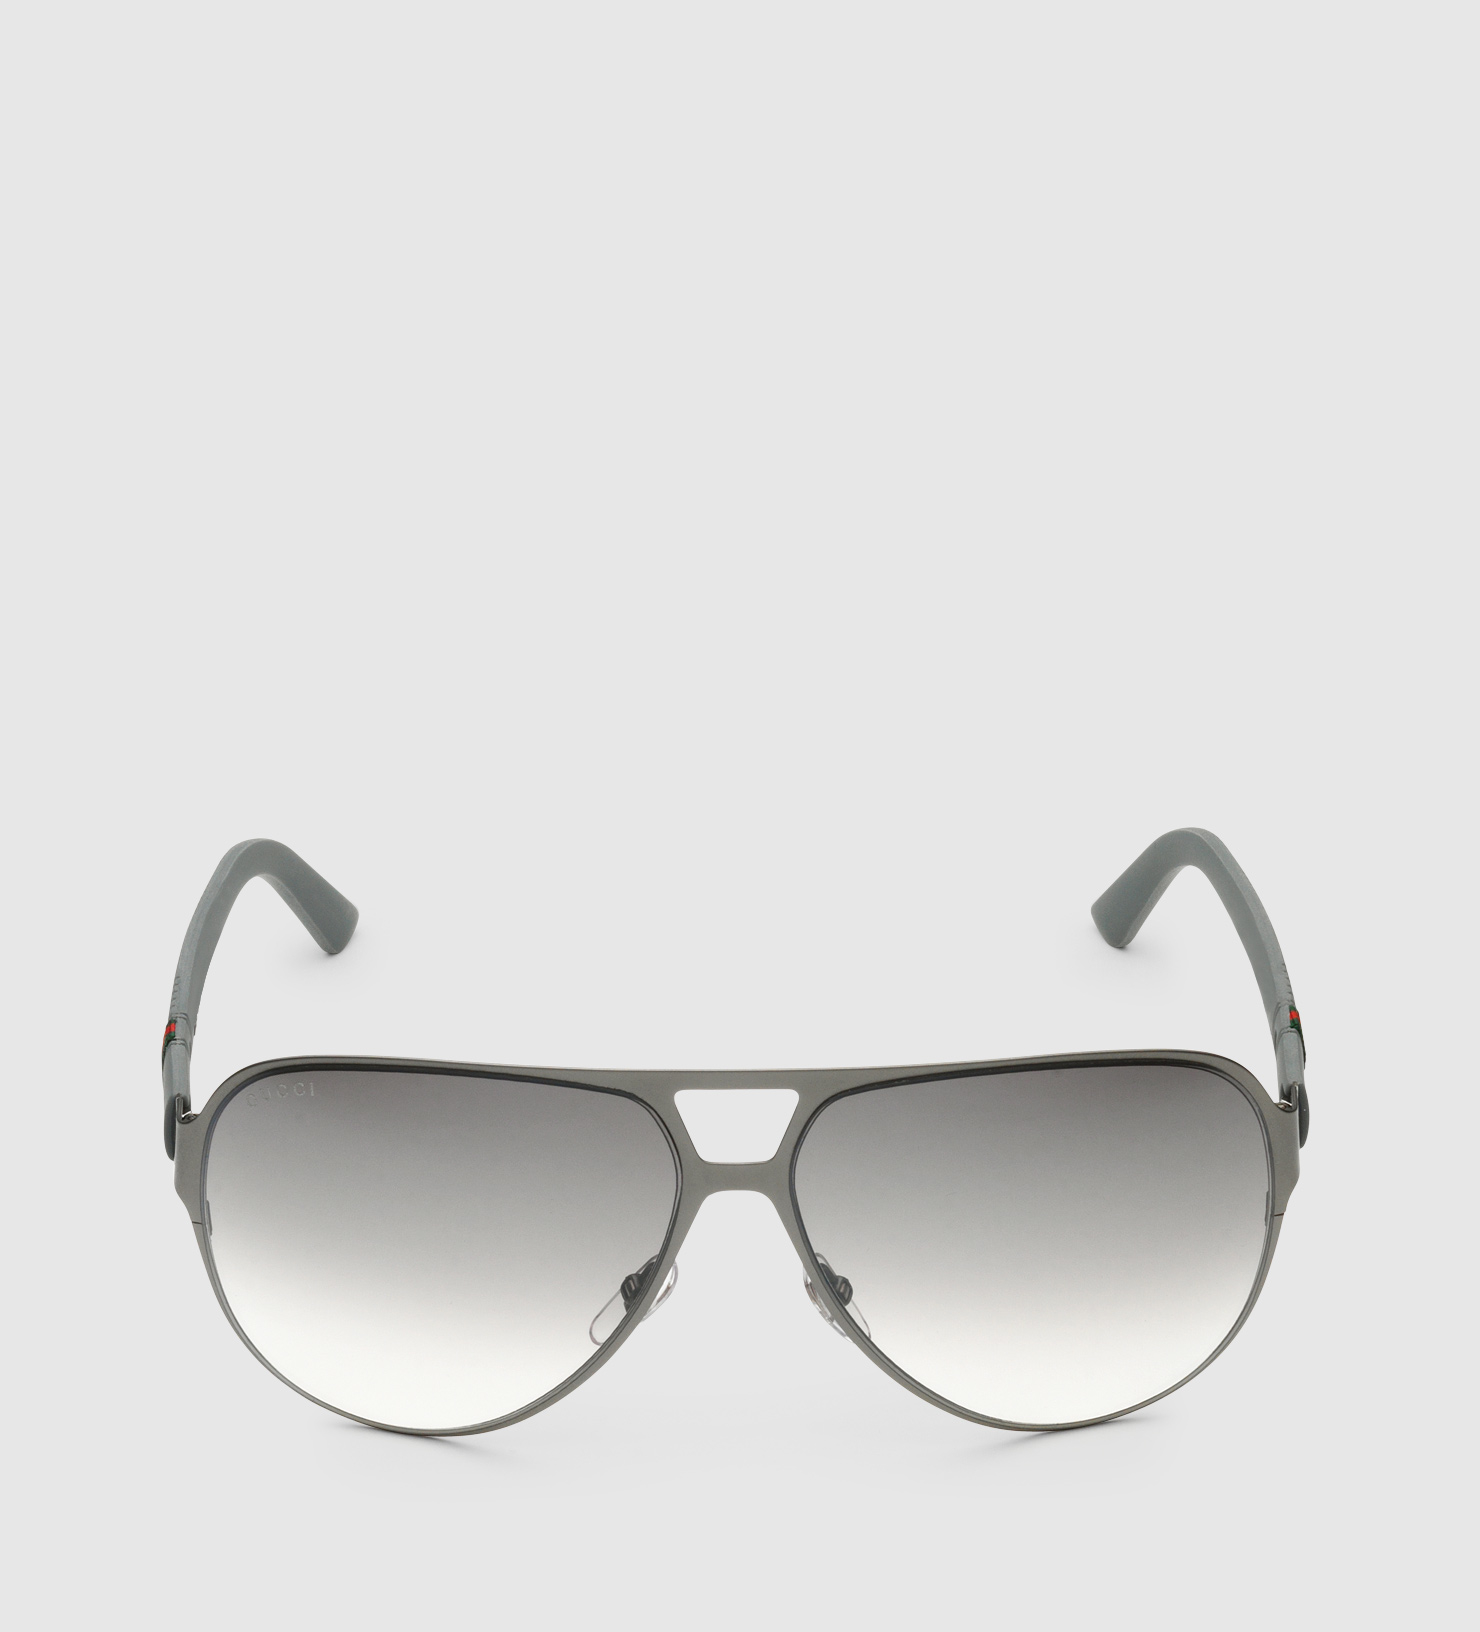 eb07ff089d2f Gucci Light Steel Aviator Sunglasses in Gray for Men - Lyst